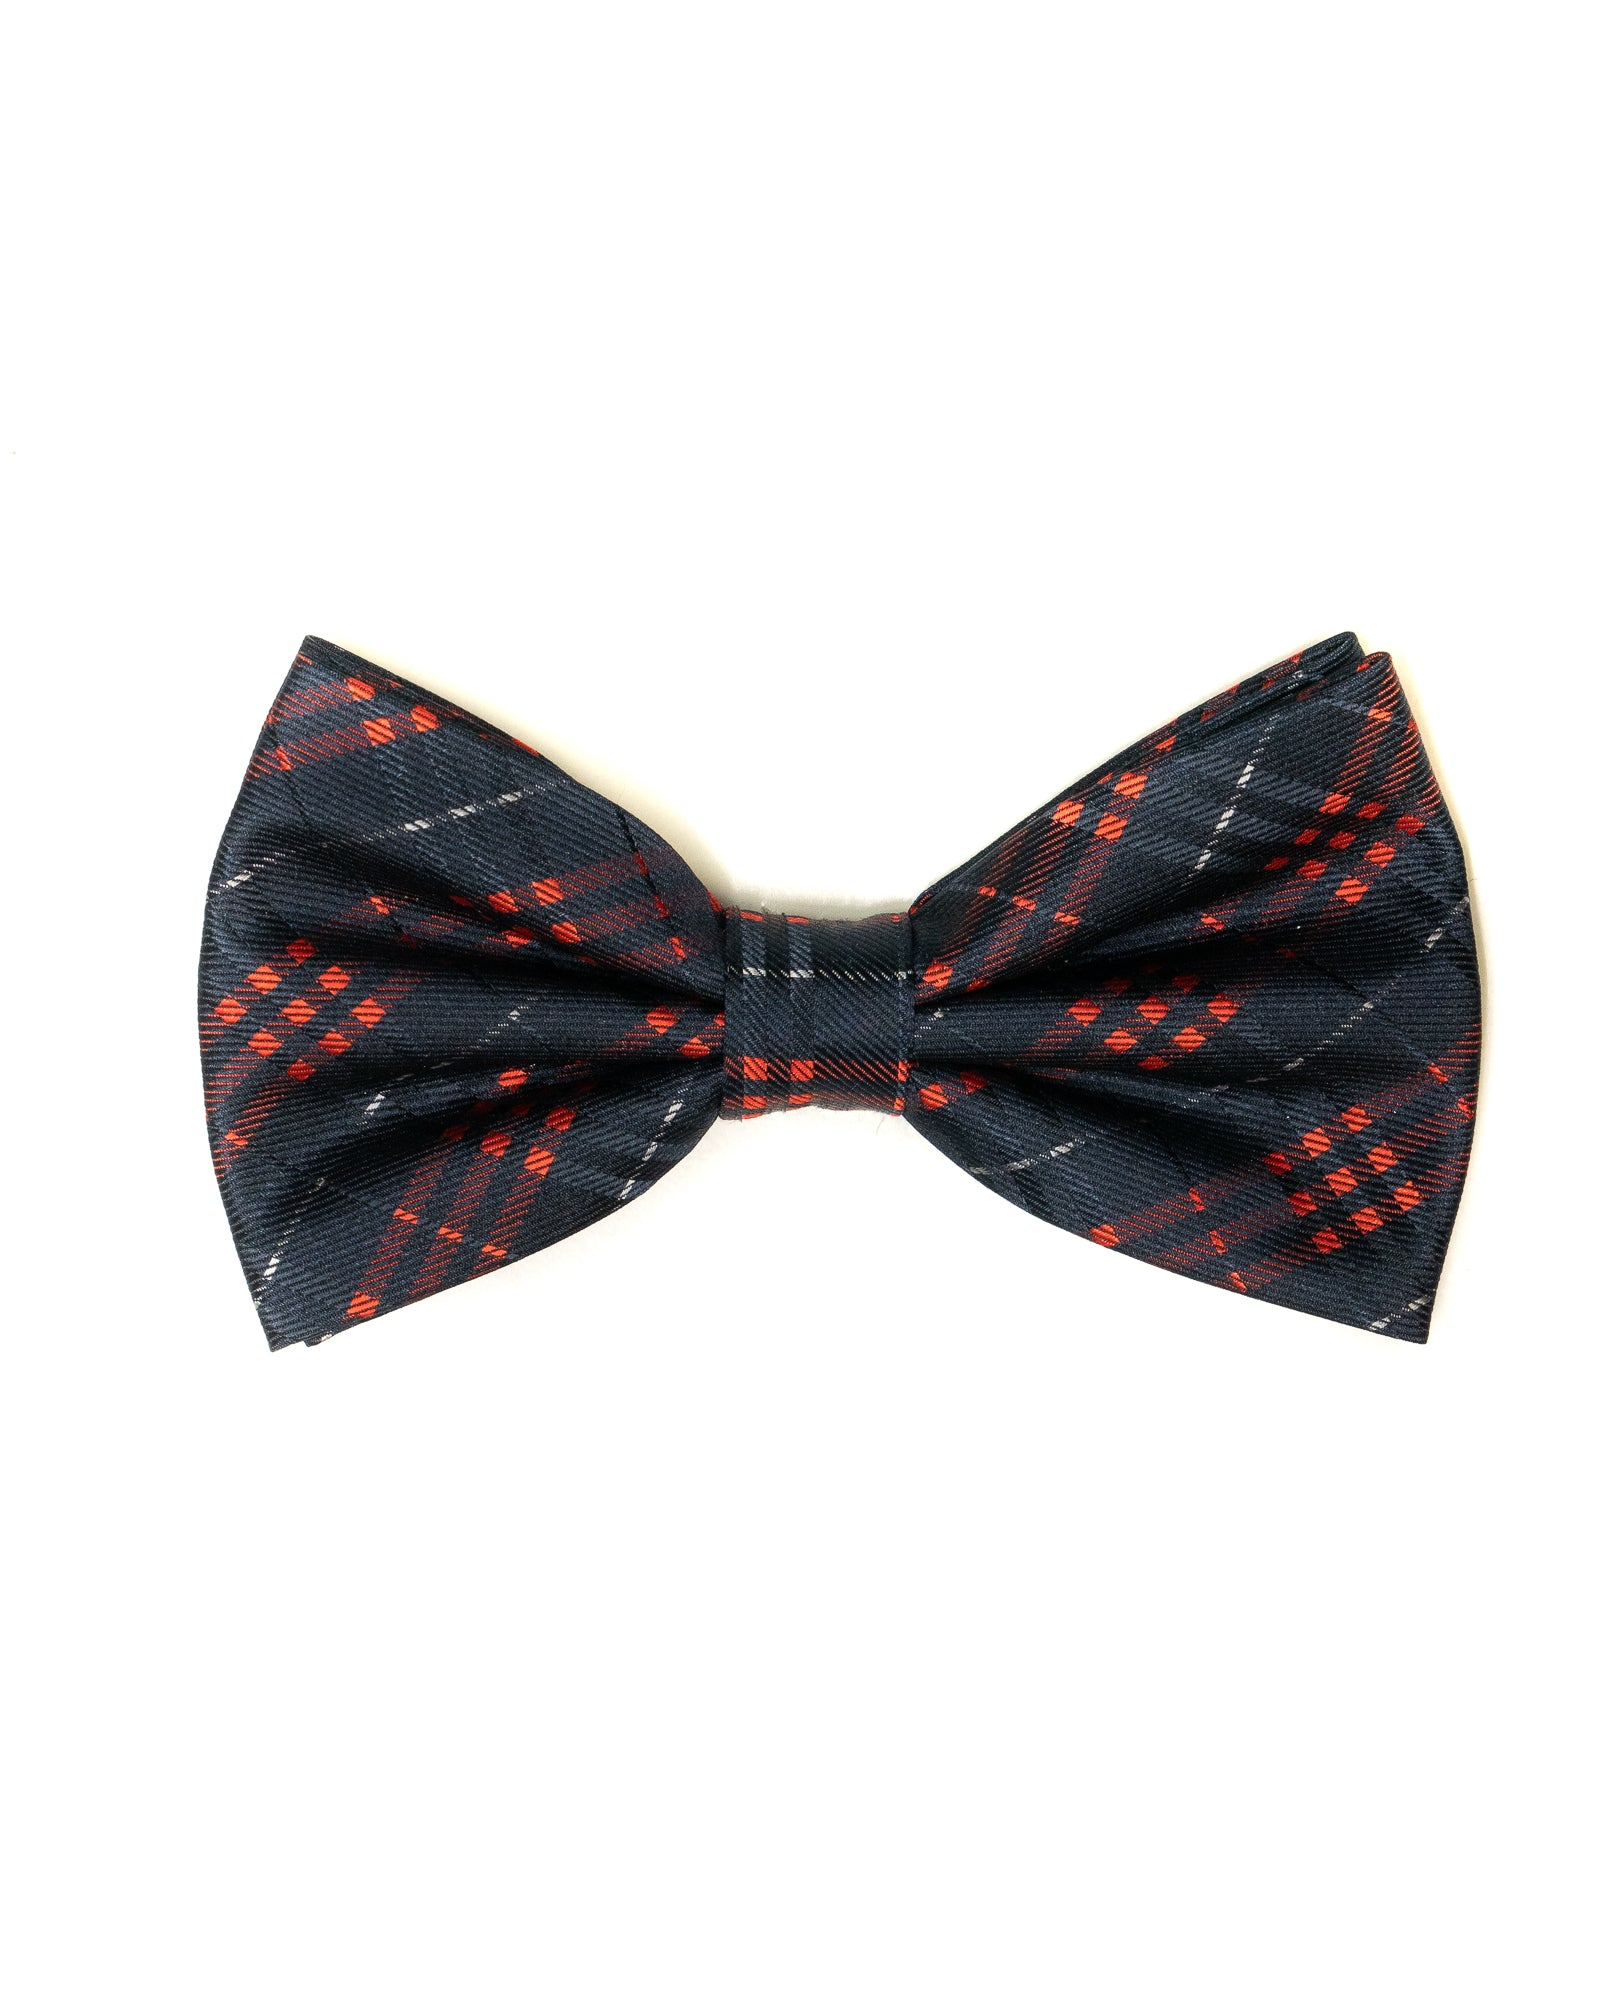 Bow Tie In Plaid Pattern Navy & Red - Rainwater's Men's Clothing and Tuxedo Rental